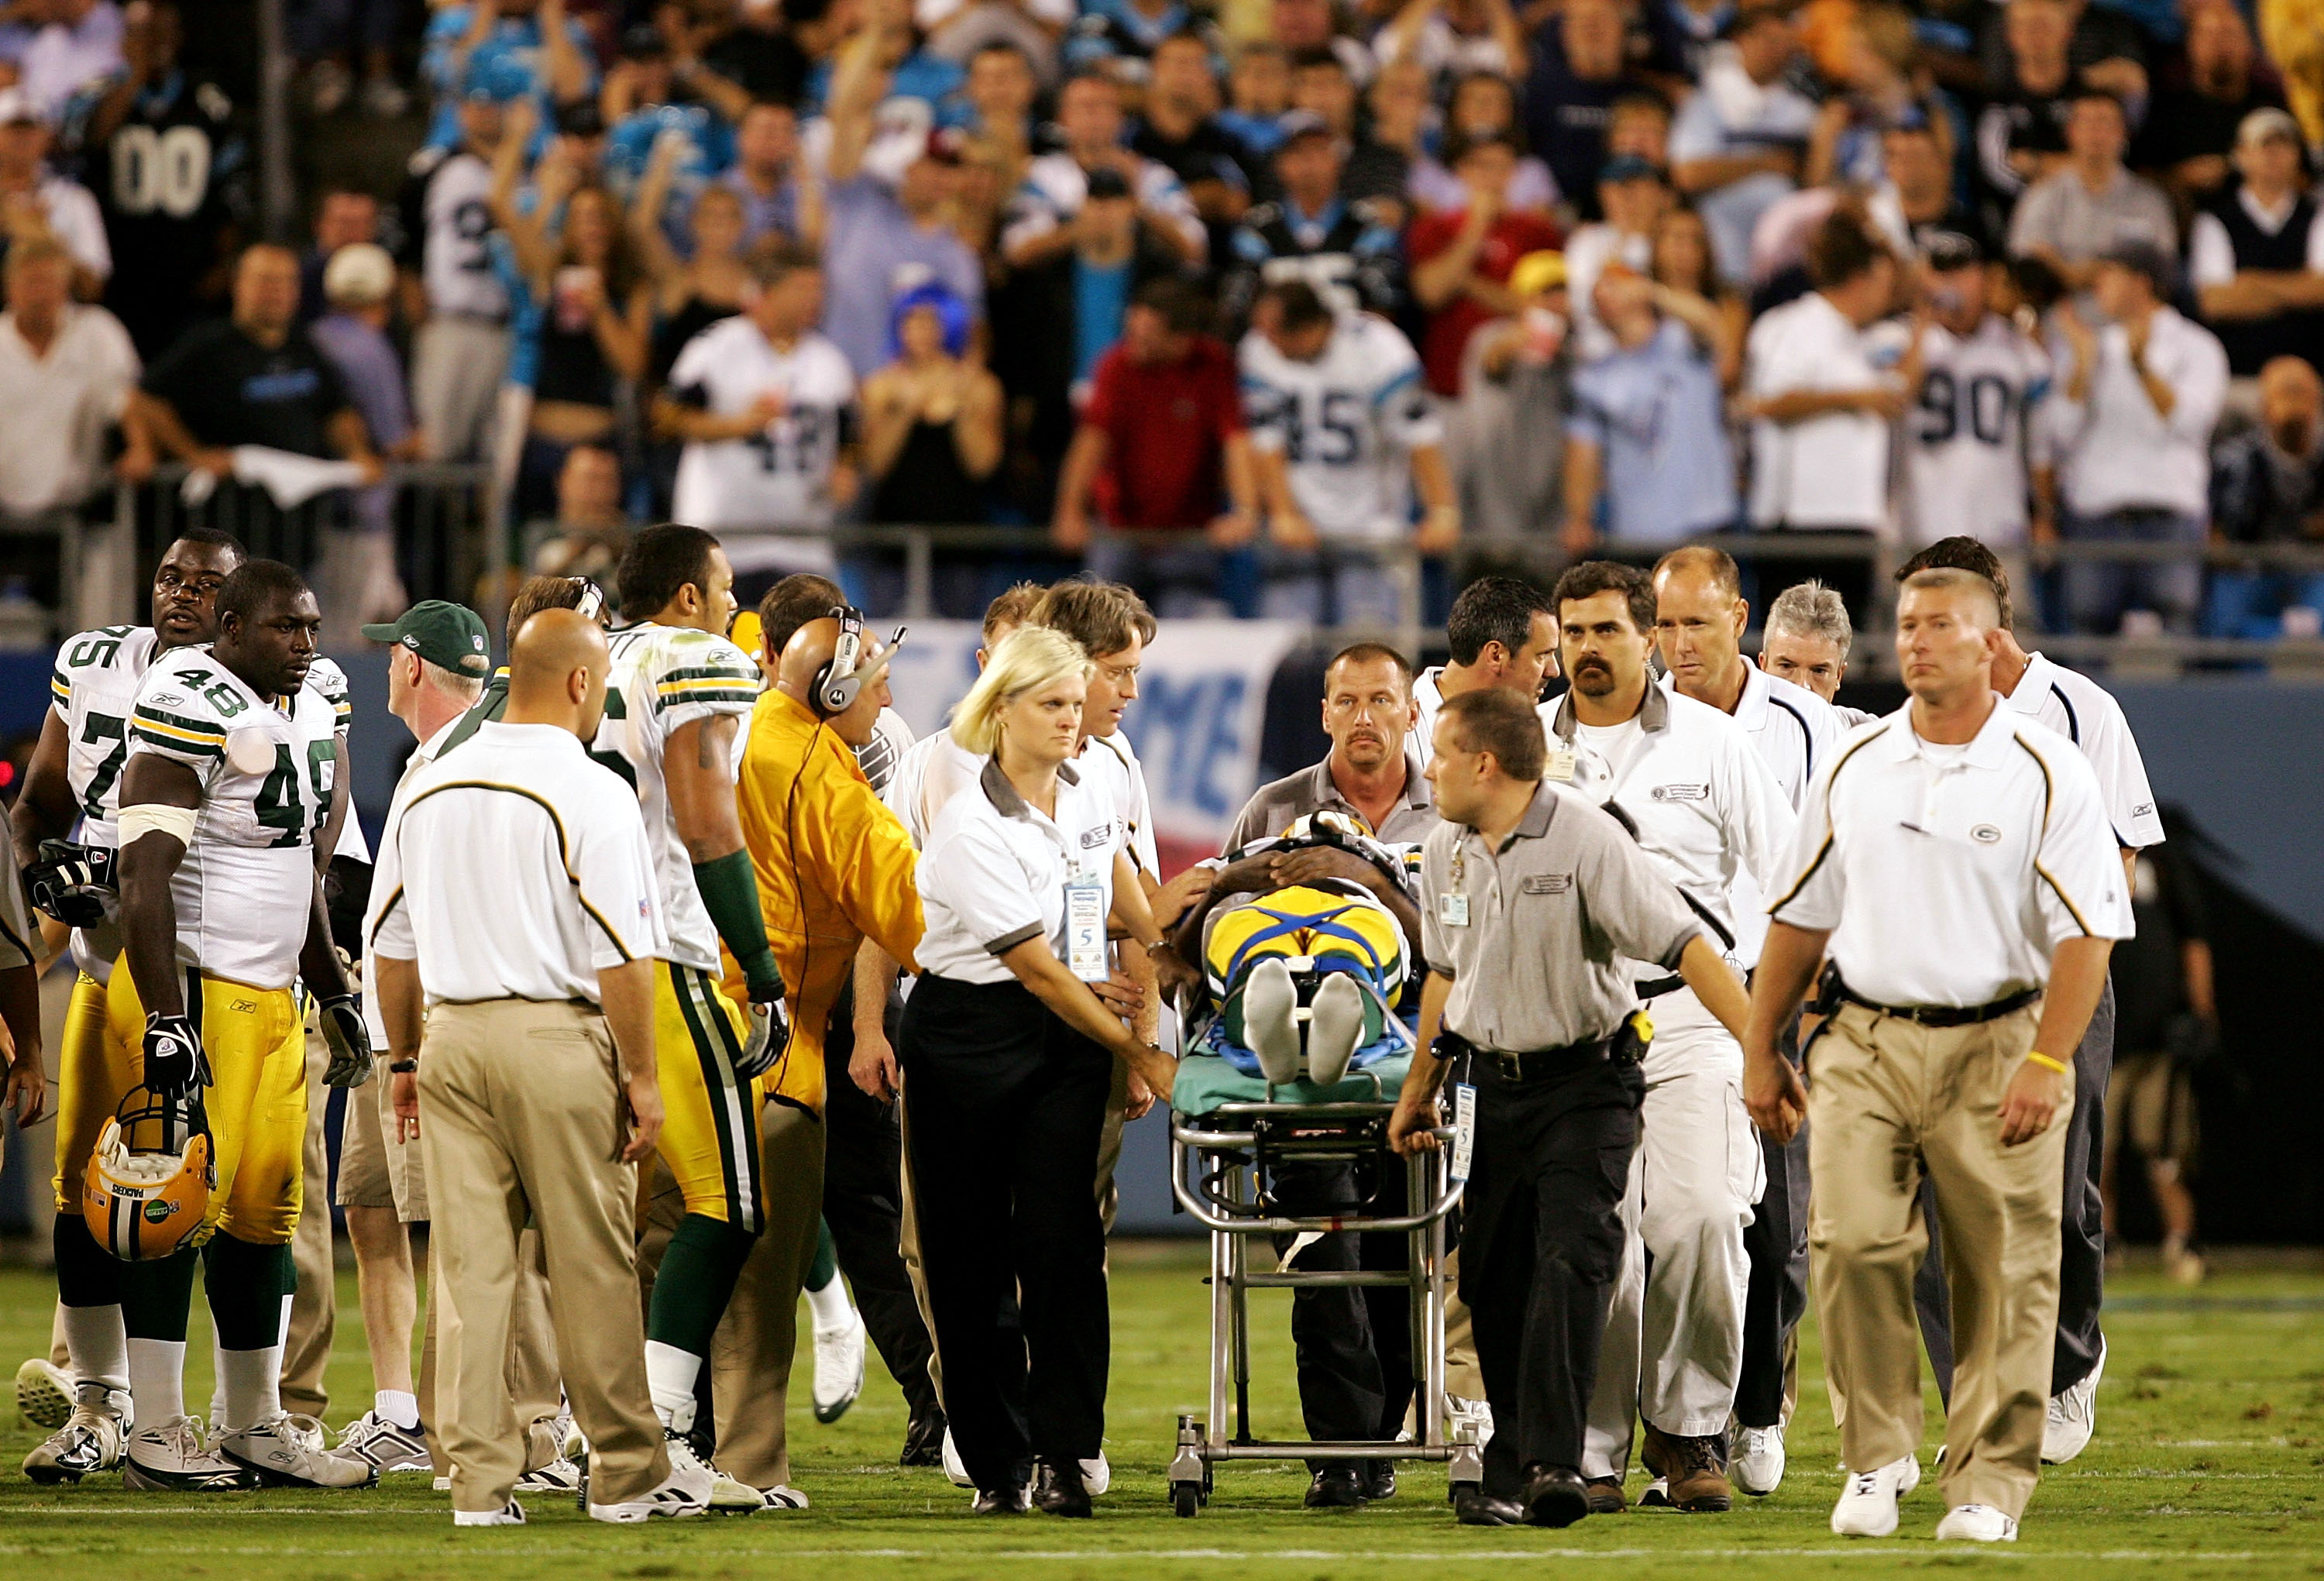 CHARLOTTE, NC - OCTOBER 03:  Terrence Murphy #85 of the Green Bay Packers is carried off the field during a game against the Carolina Panthers October 3, 2005 at Bank of America Stadium in Charlotte, North Carolina.  (Photo By Streeter Lecka/Getty Images)